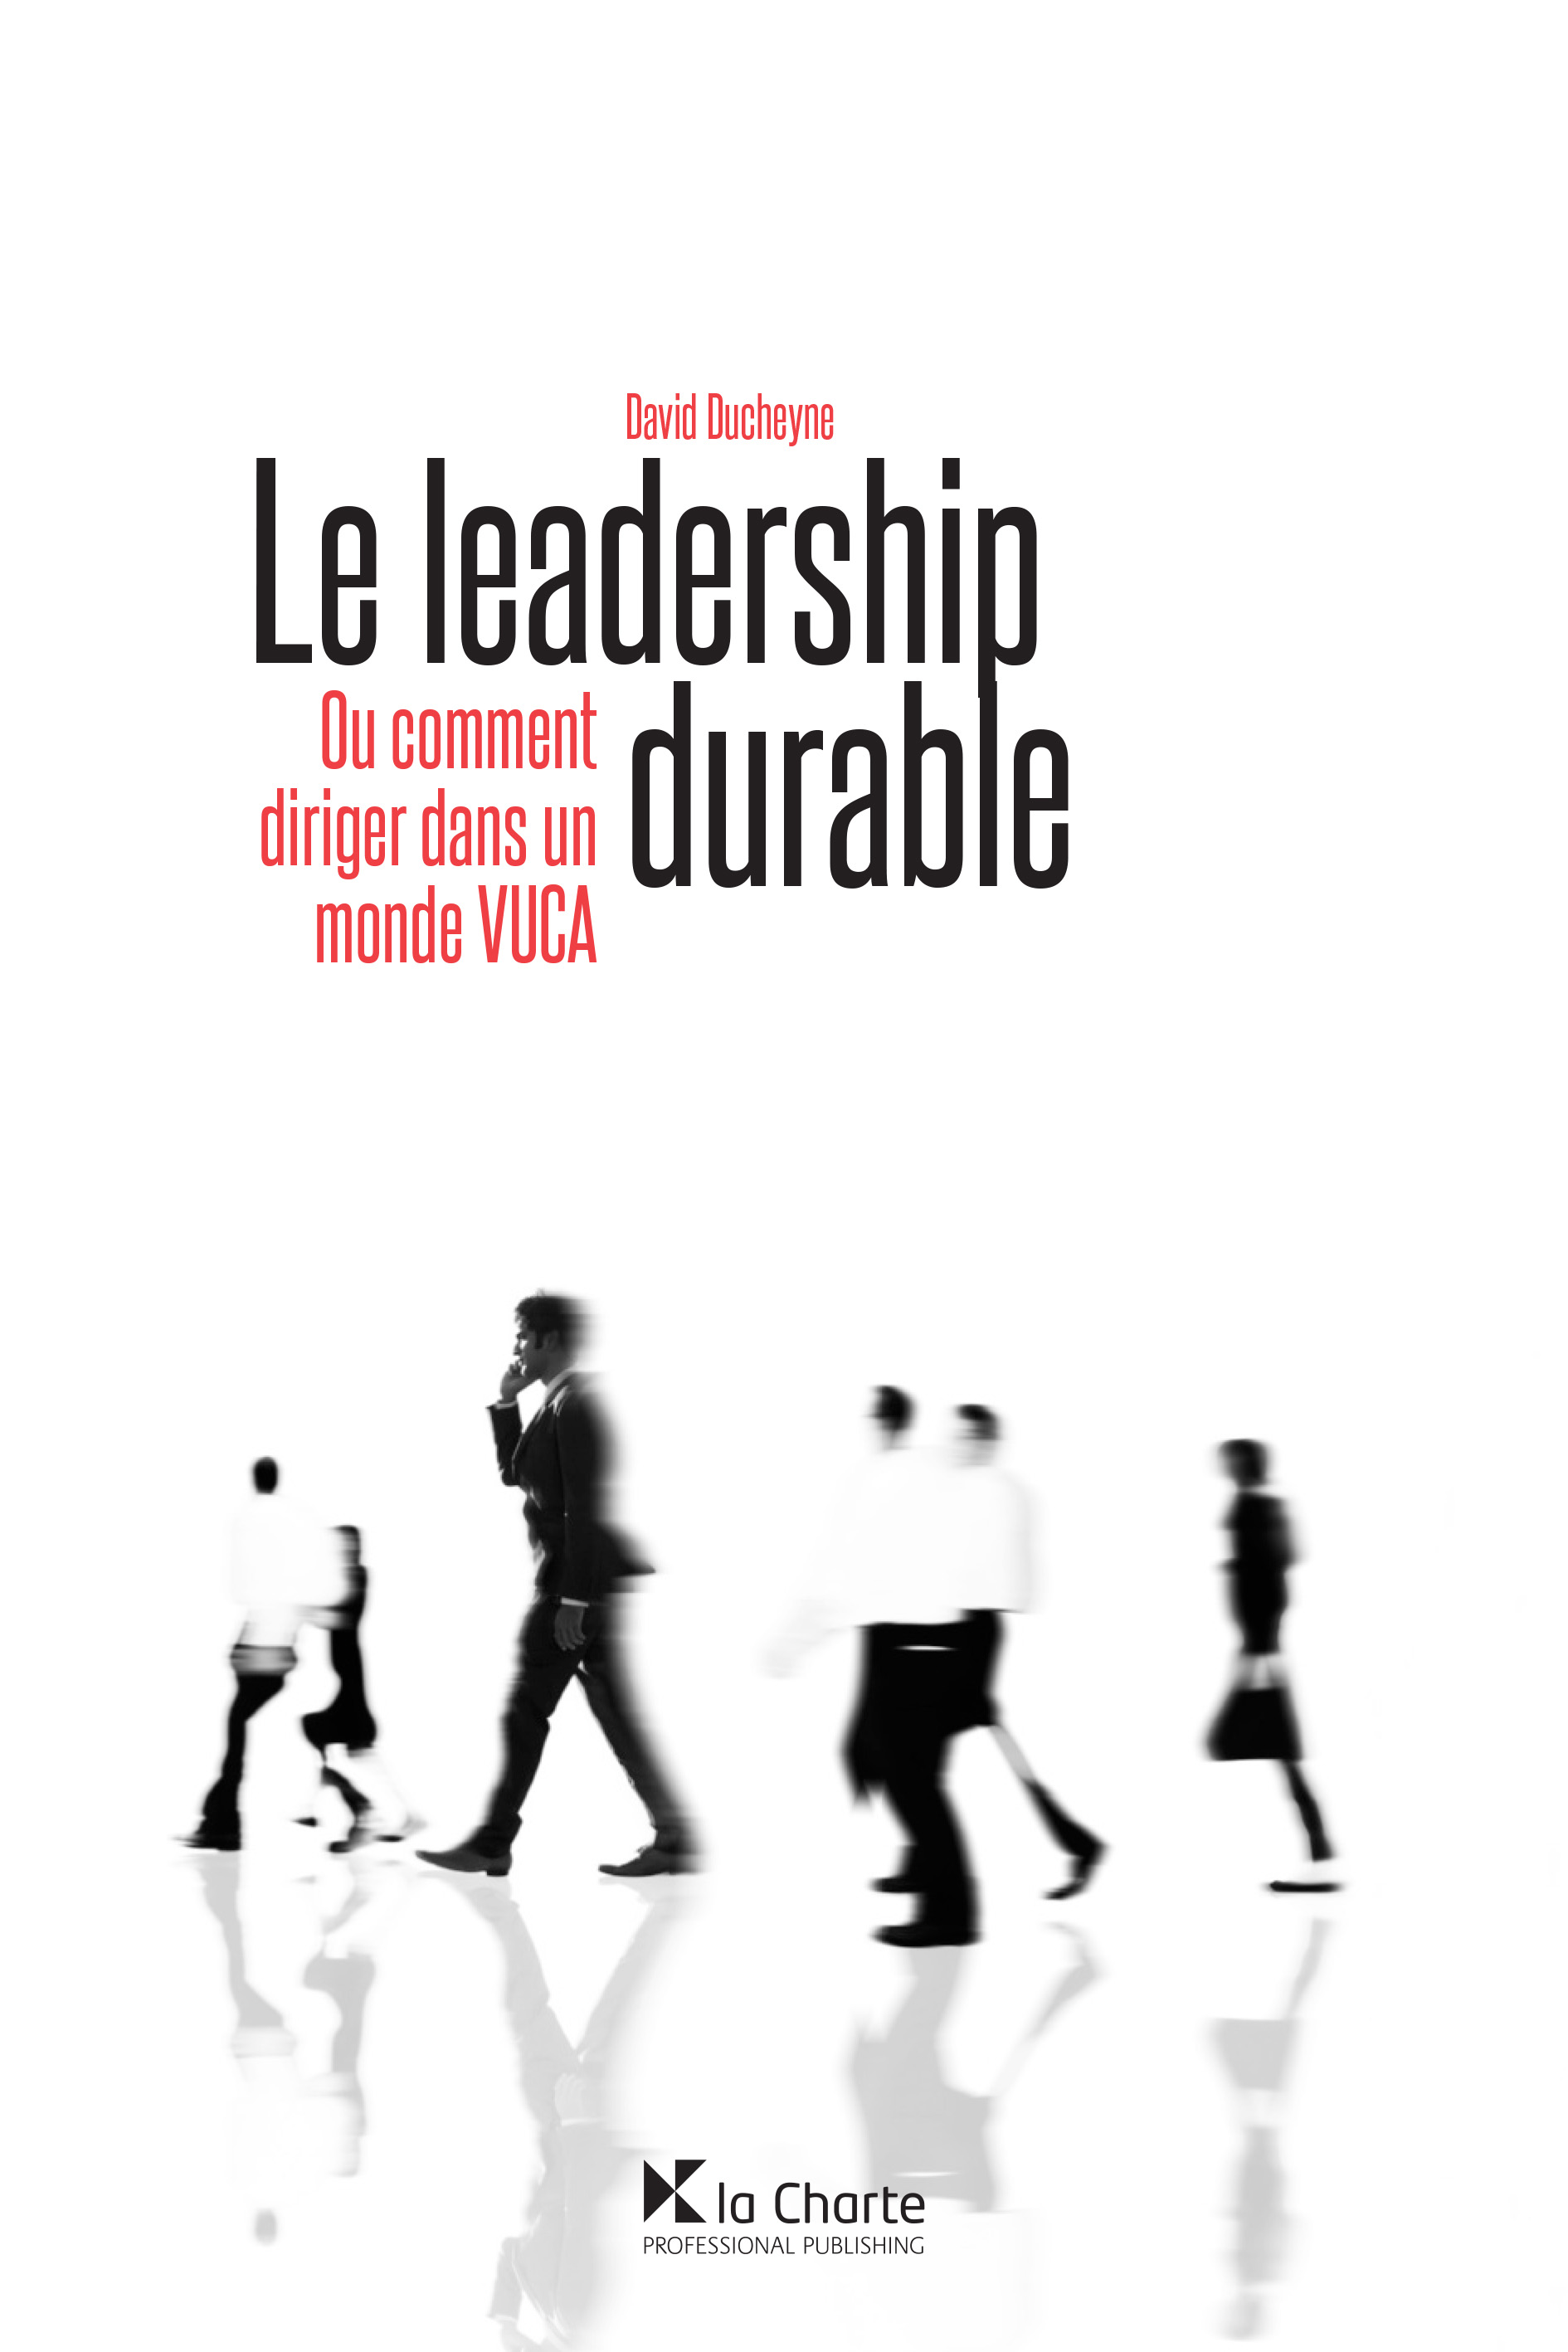 Le leadership durable